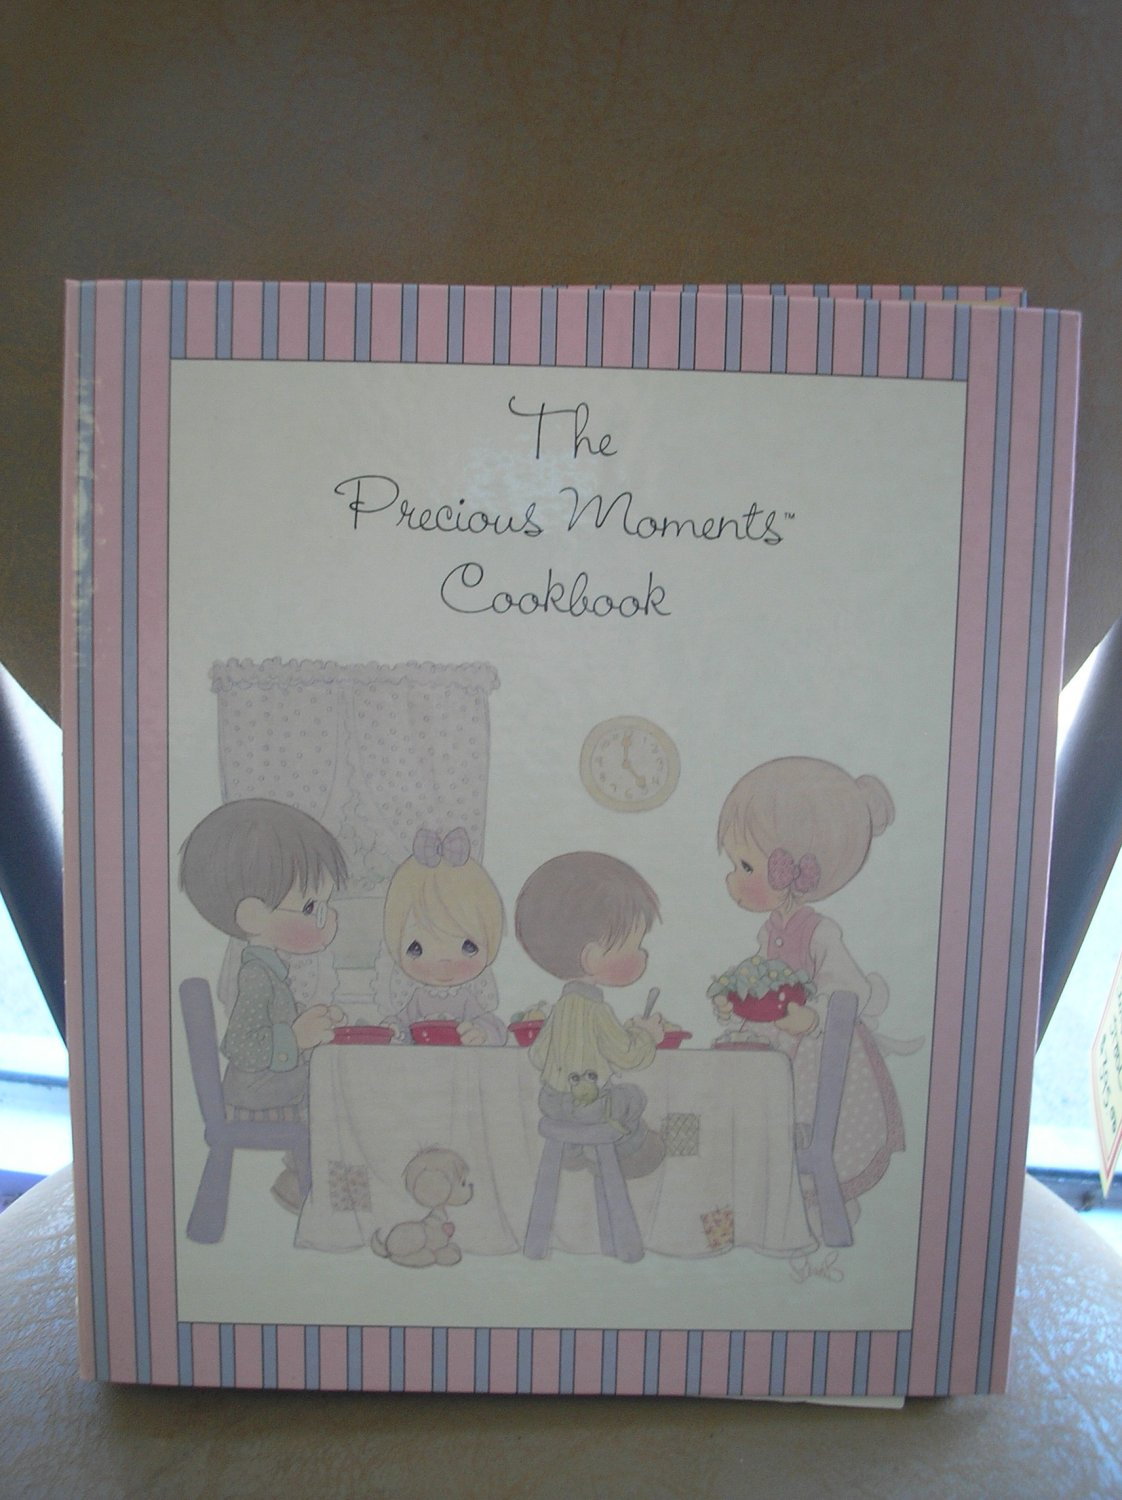 THE PRECIOUS MOMENTS COOKBOOK (Spiral-bound) from 1988; Foreword by Sam Butcher!